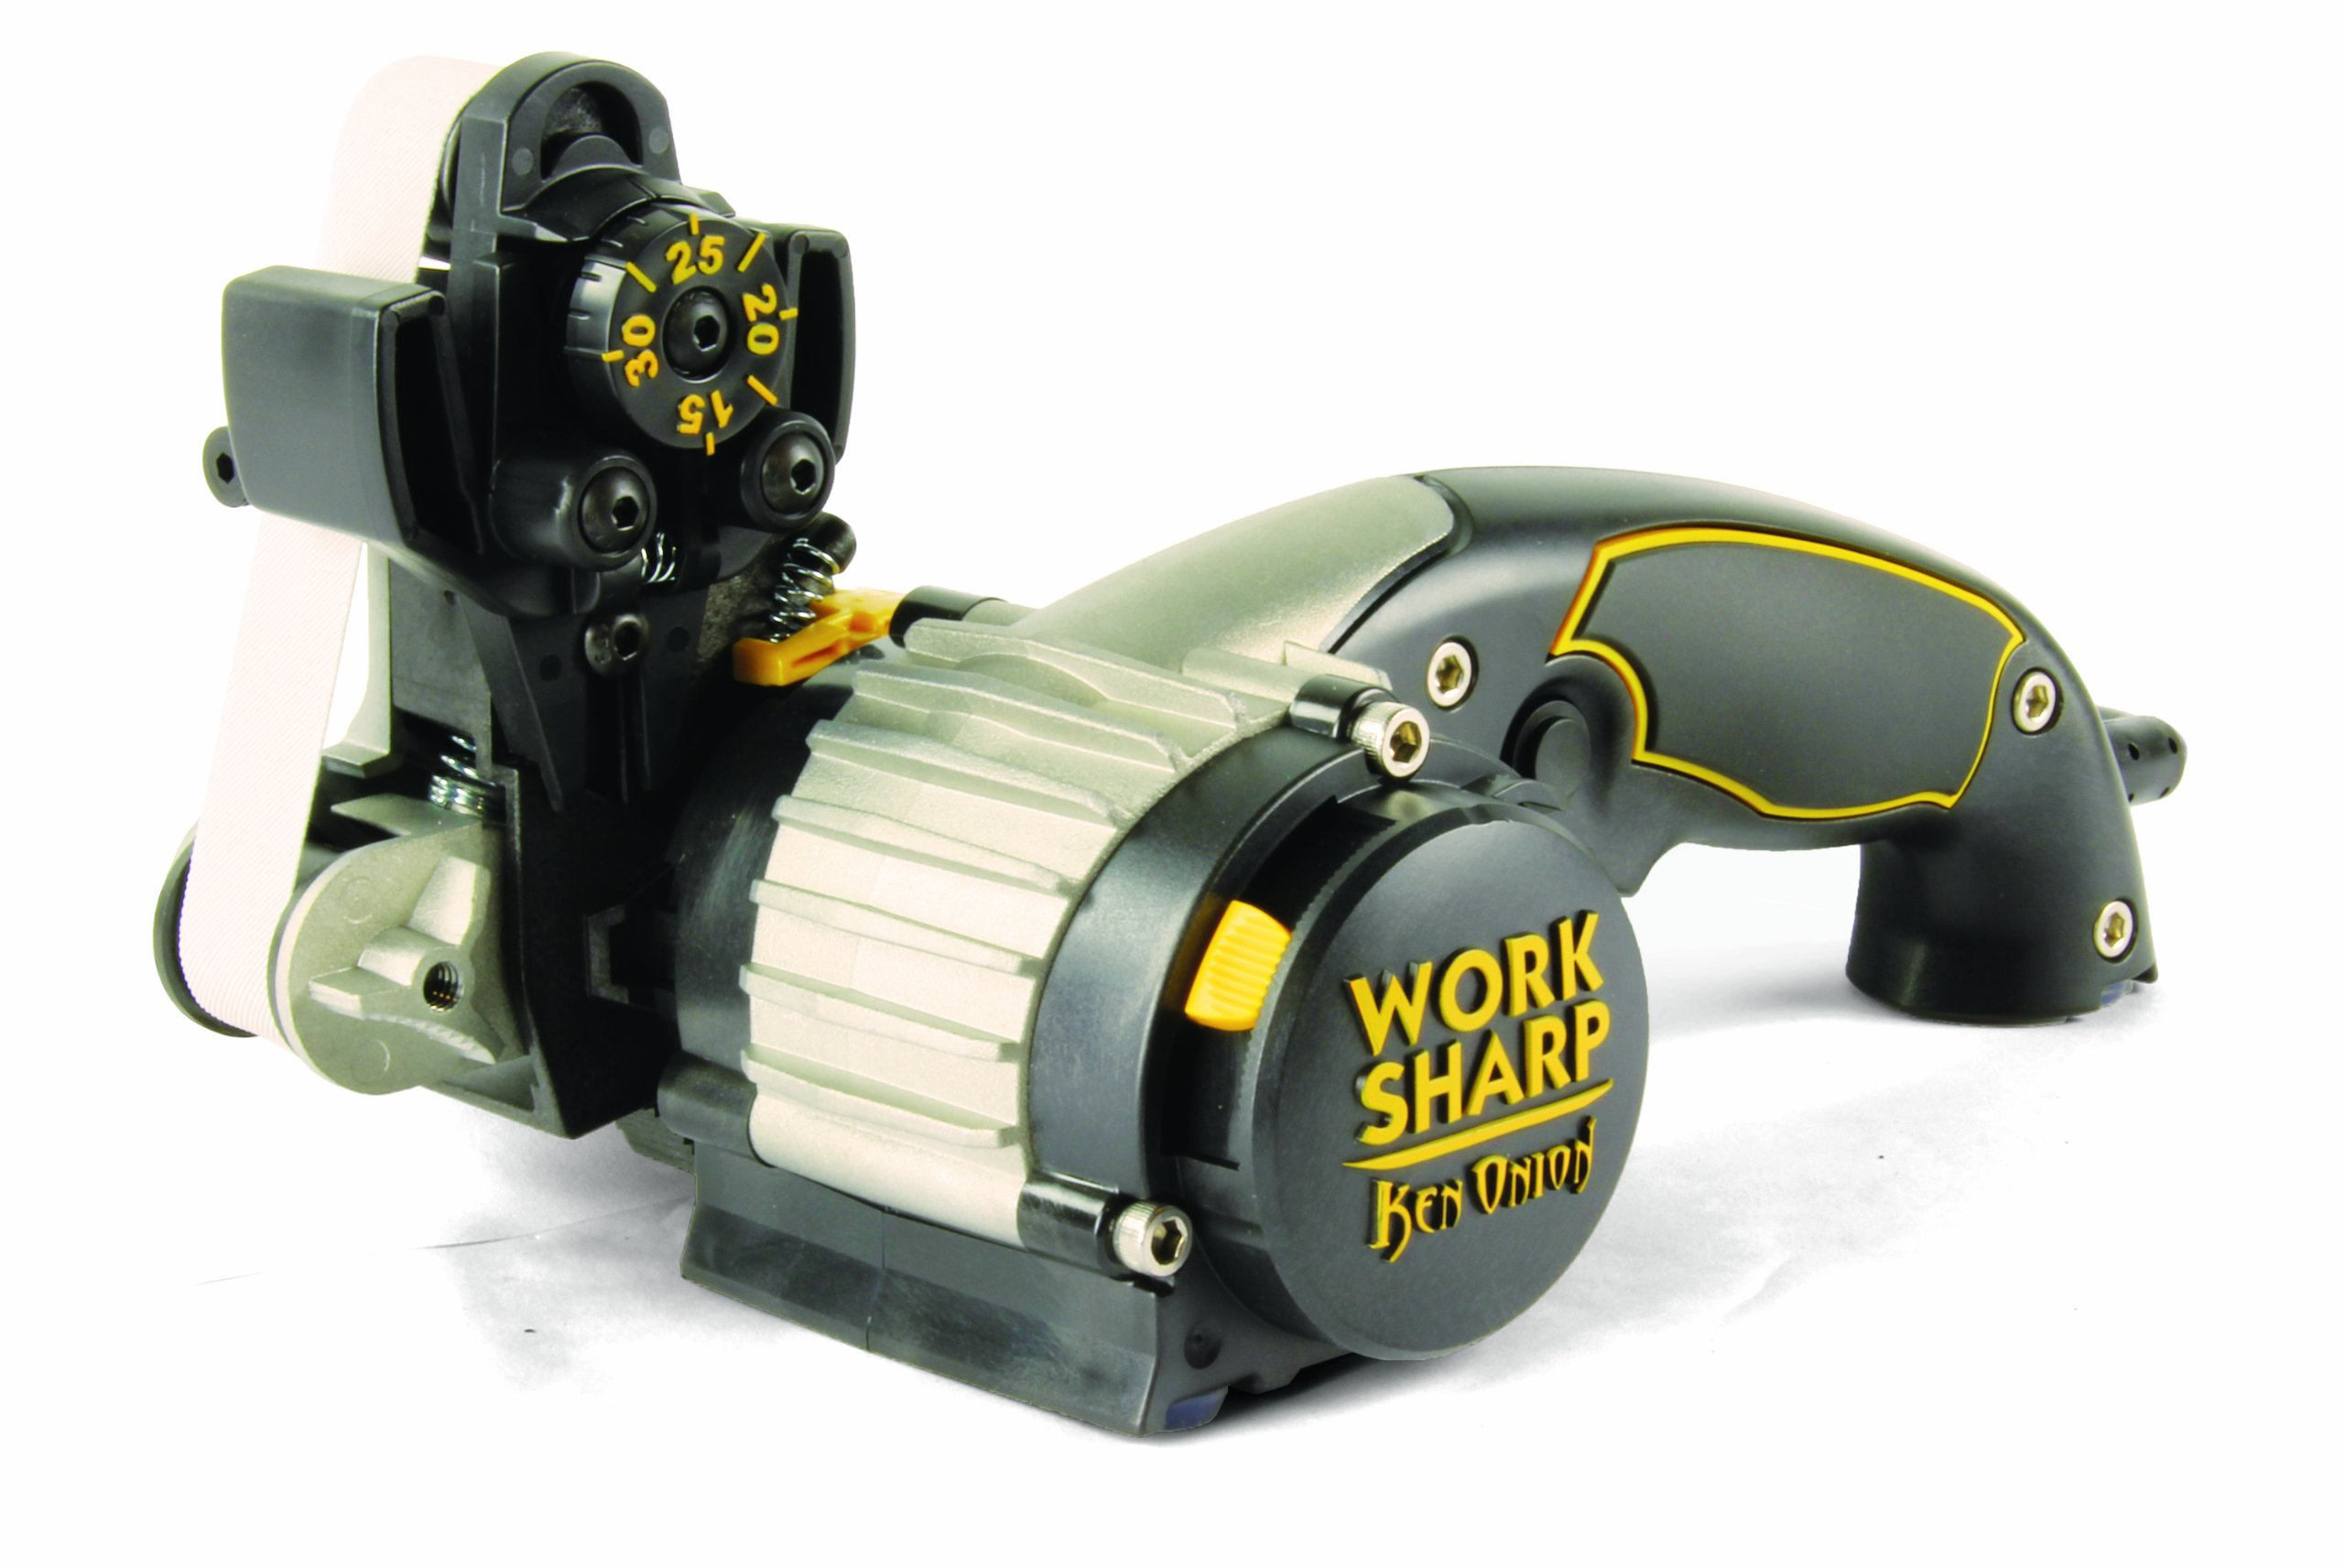 Work Sharp Ken Onion Edition, Fast, Repeatable, & Precision Sharpening from 15° to 30°, Premium Flexible Abrasive Belts, Variable Speed Motor, & Multi-Positioning Sharpening Module by Work Sharp (Image #3)